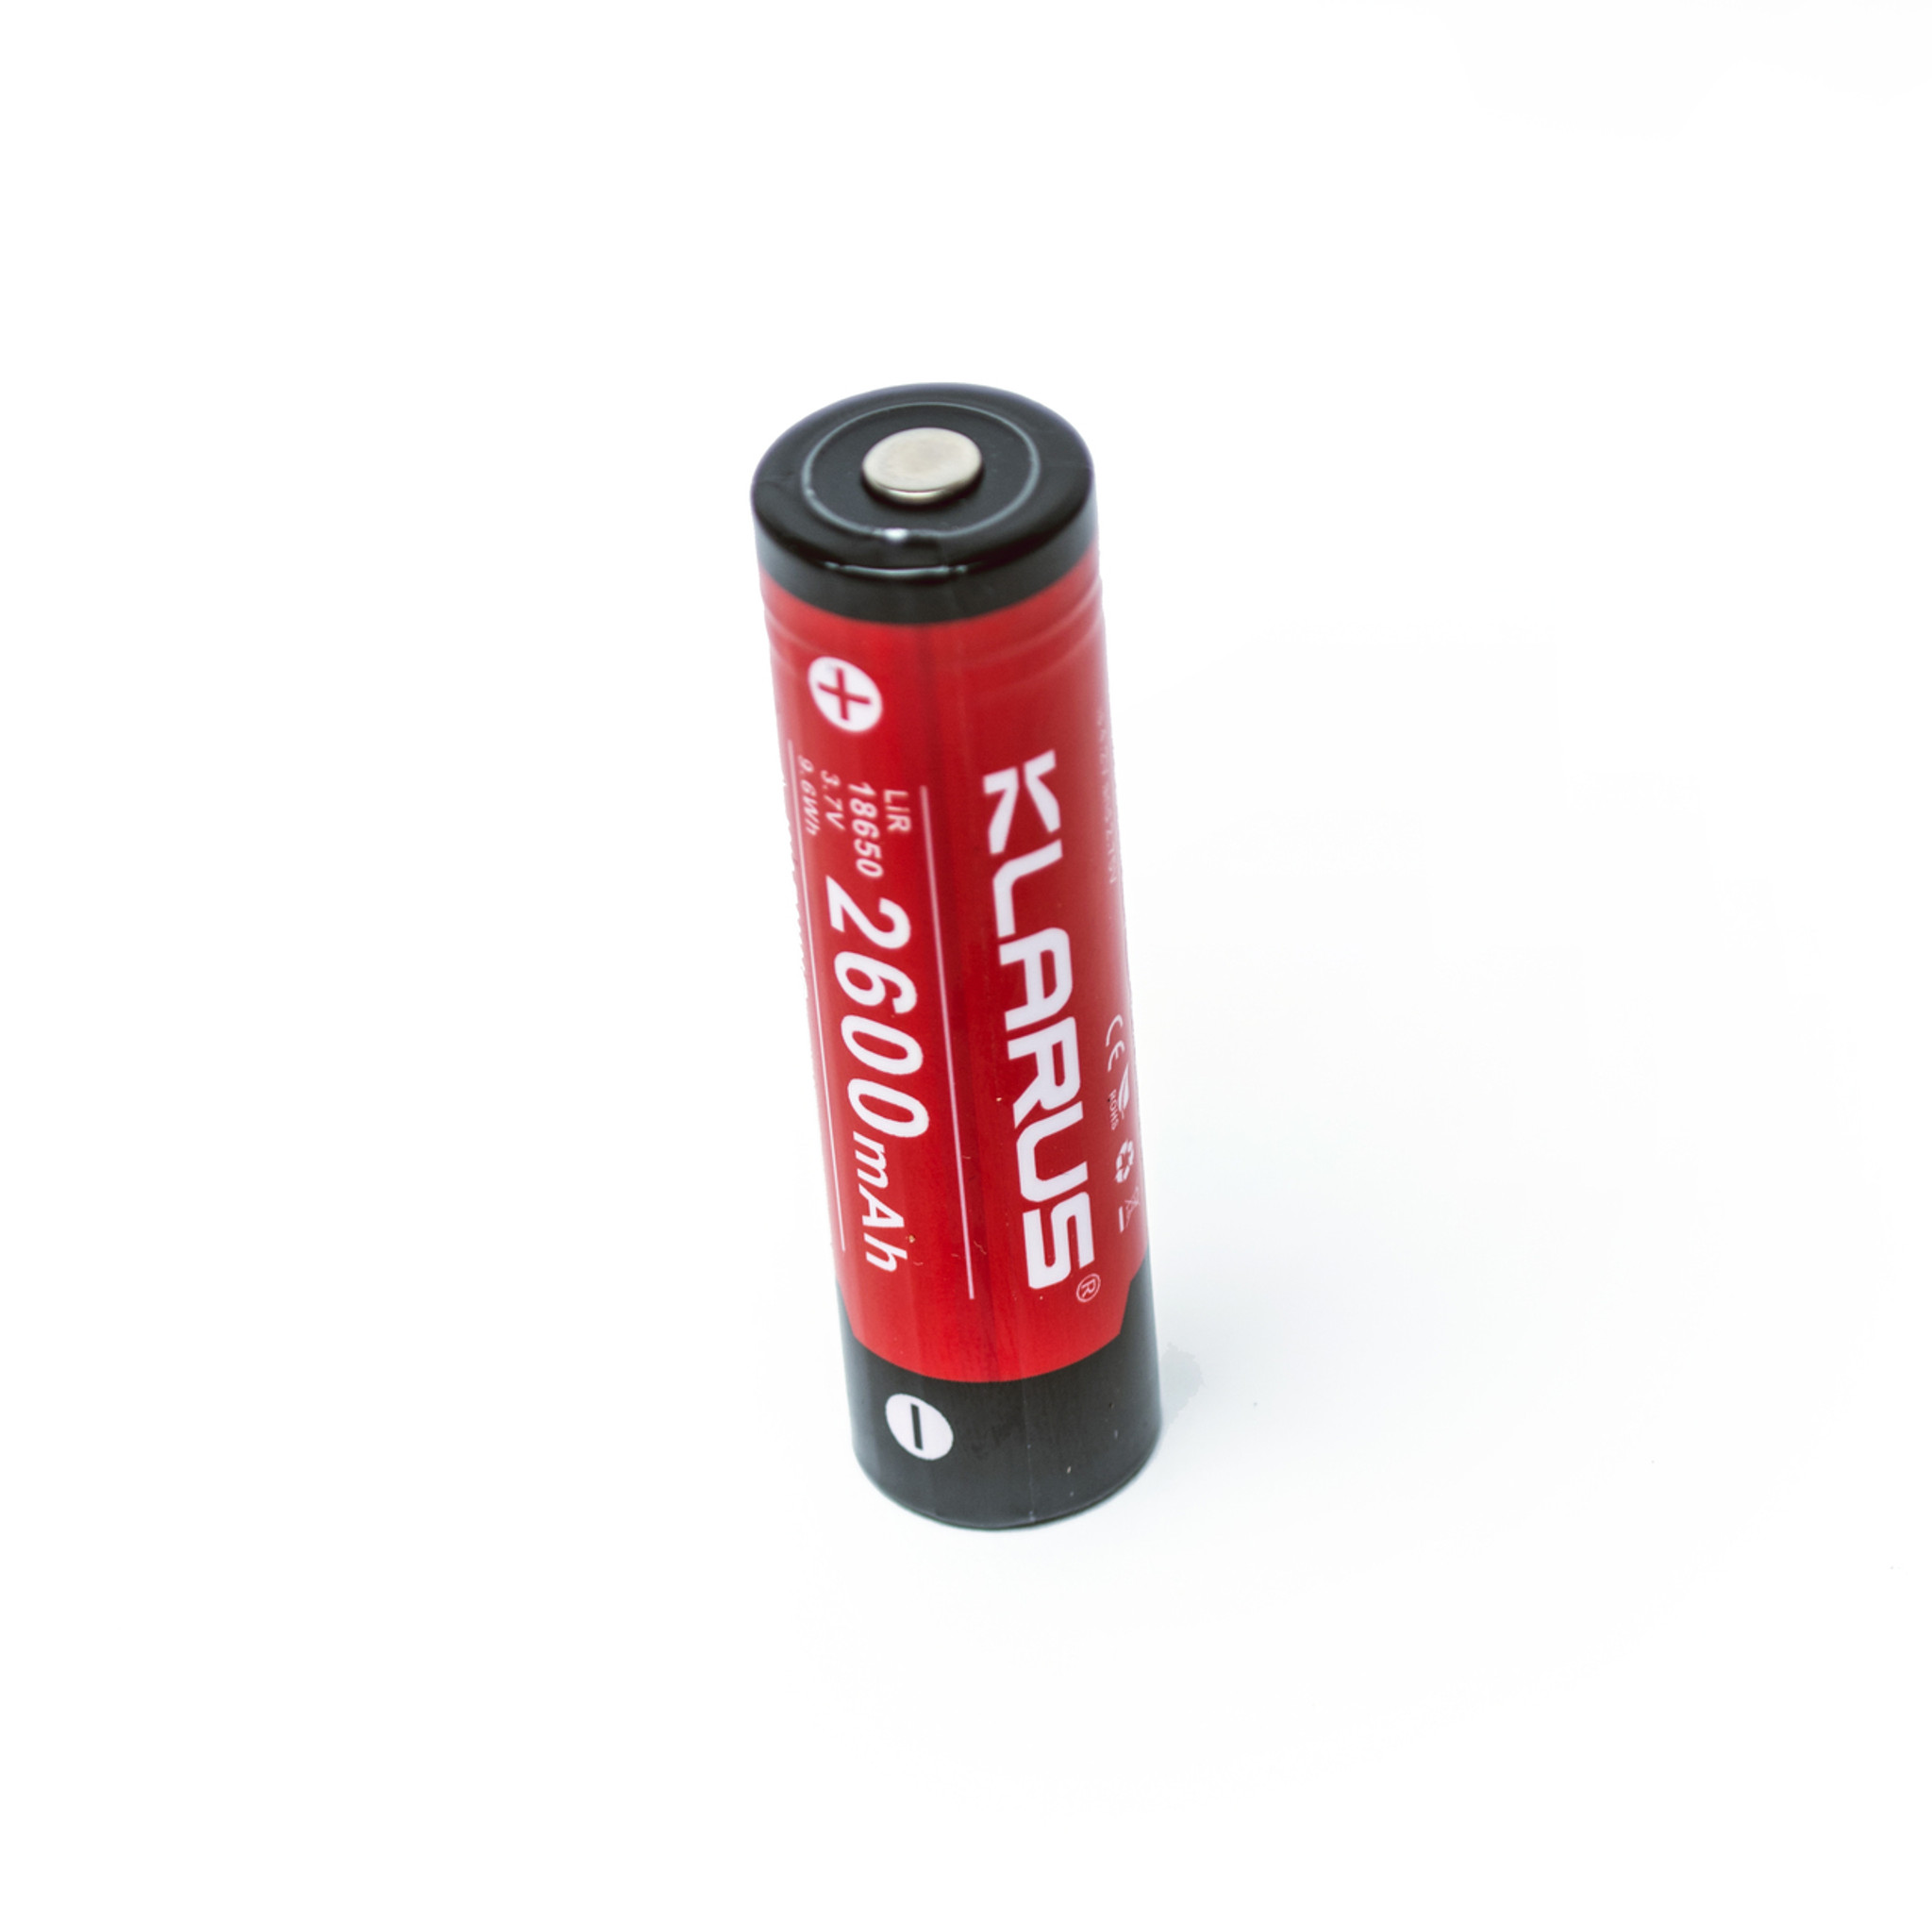 Klarus 2600 mAh Rechargable battery